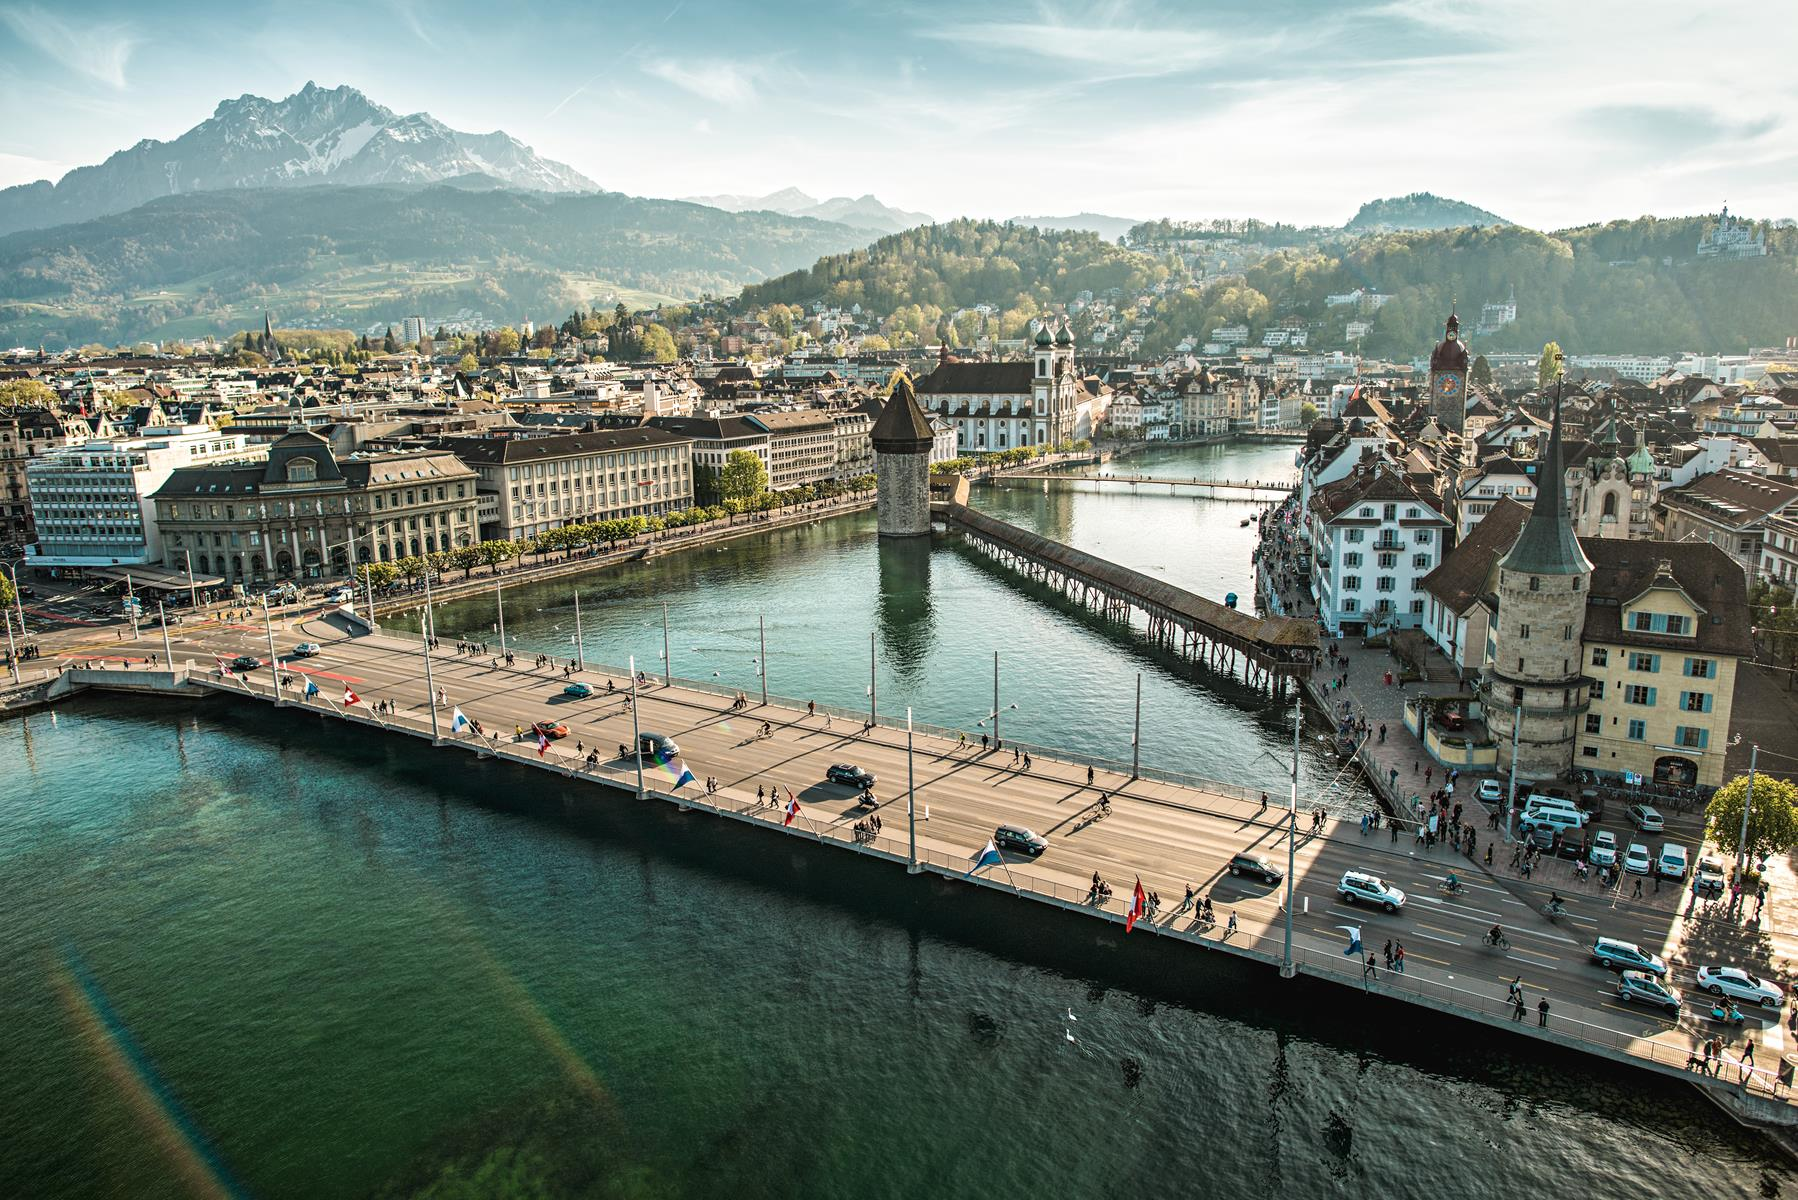 The covered Chapel Bridge and its tower are symbols of Lucerne. Mt. Pilatus looms in the distance. Switzerland Tourism